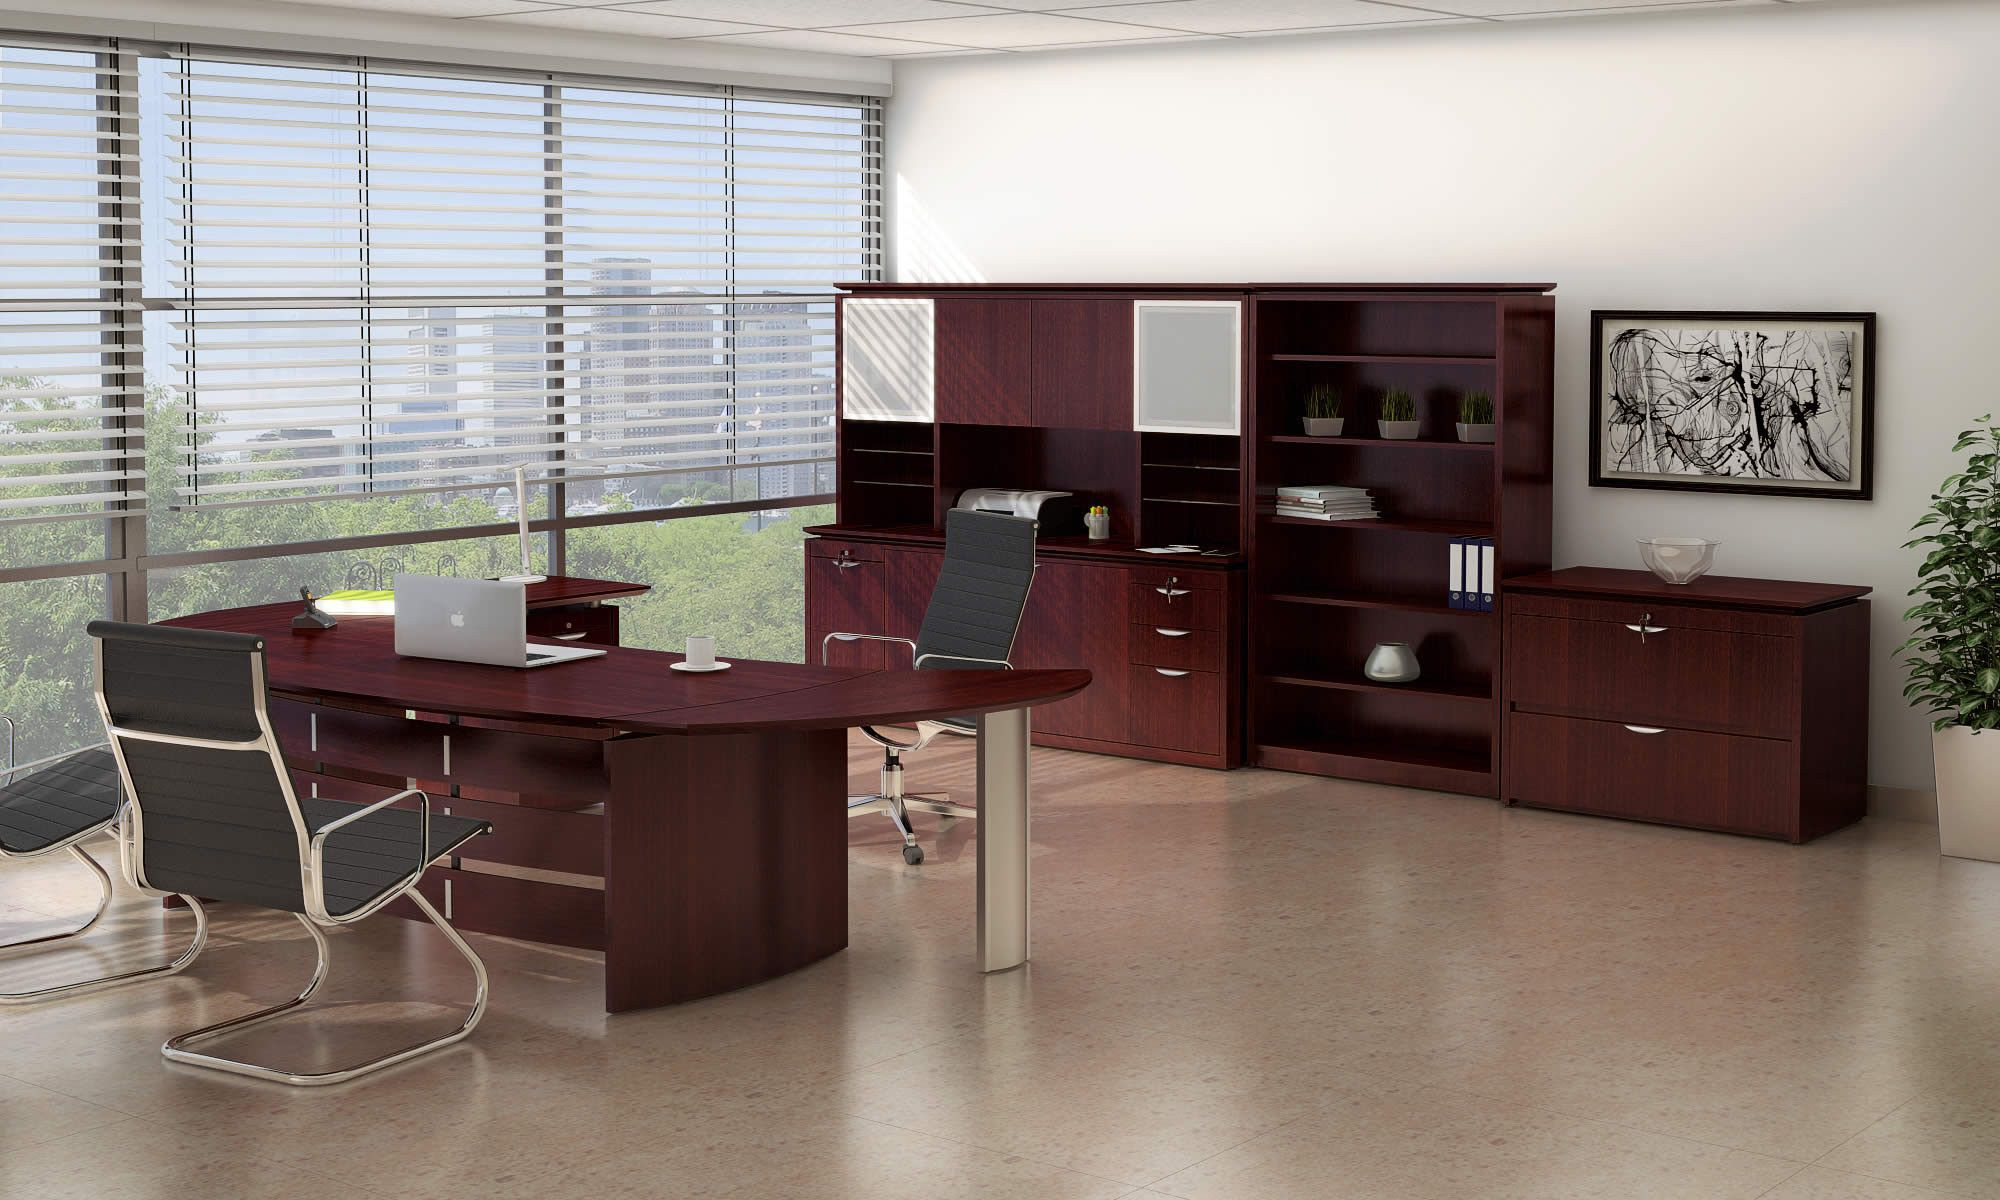 Home Office Design Layout Interior Free Astounding Decoration Magnificent Fice Inspiration Des Office Furniture Layout Buy Office Furniture Home Office Layouts